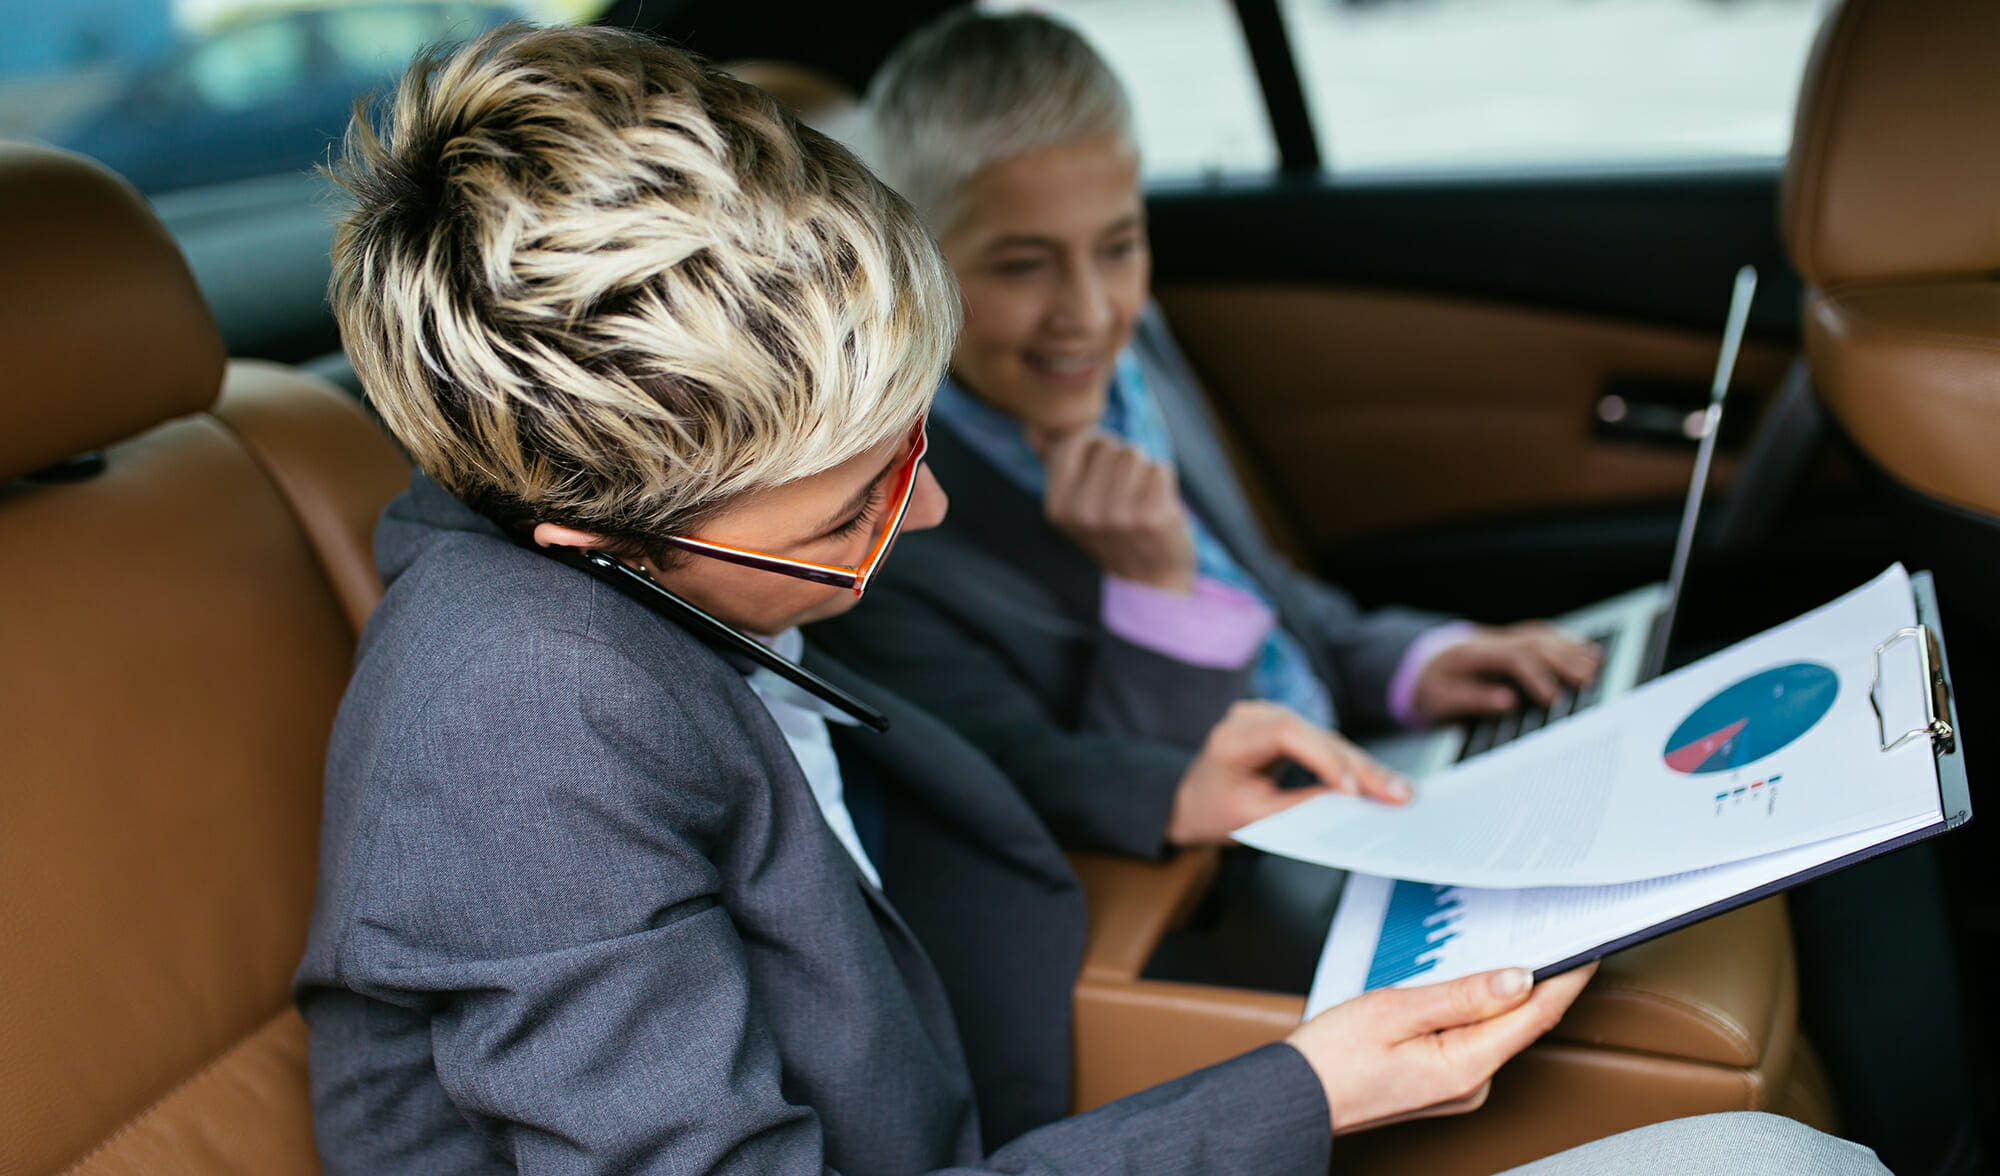 Senior businesswoman and her assistant sitting in limousine talk